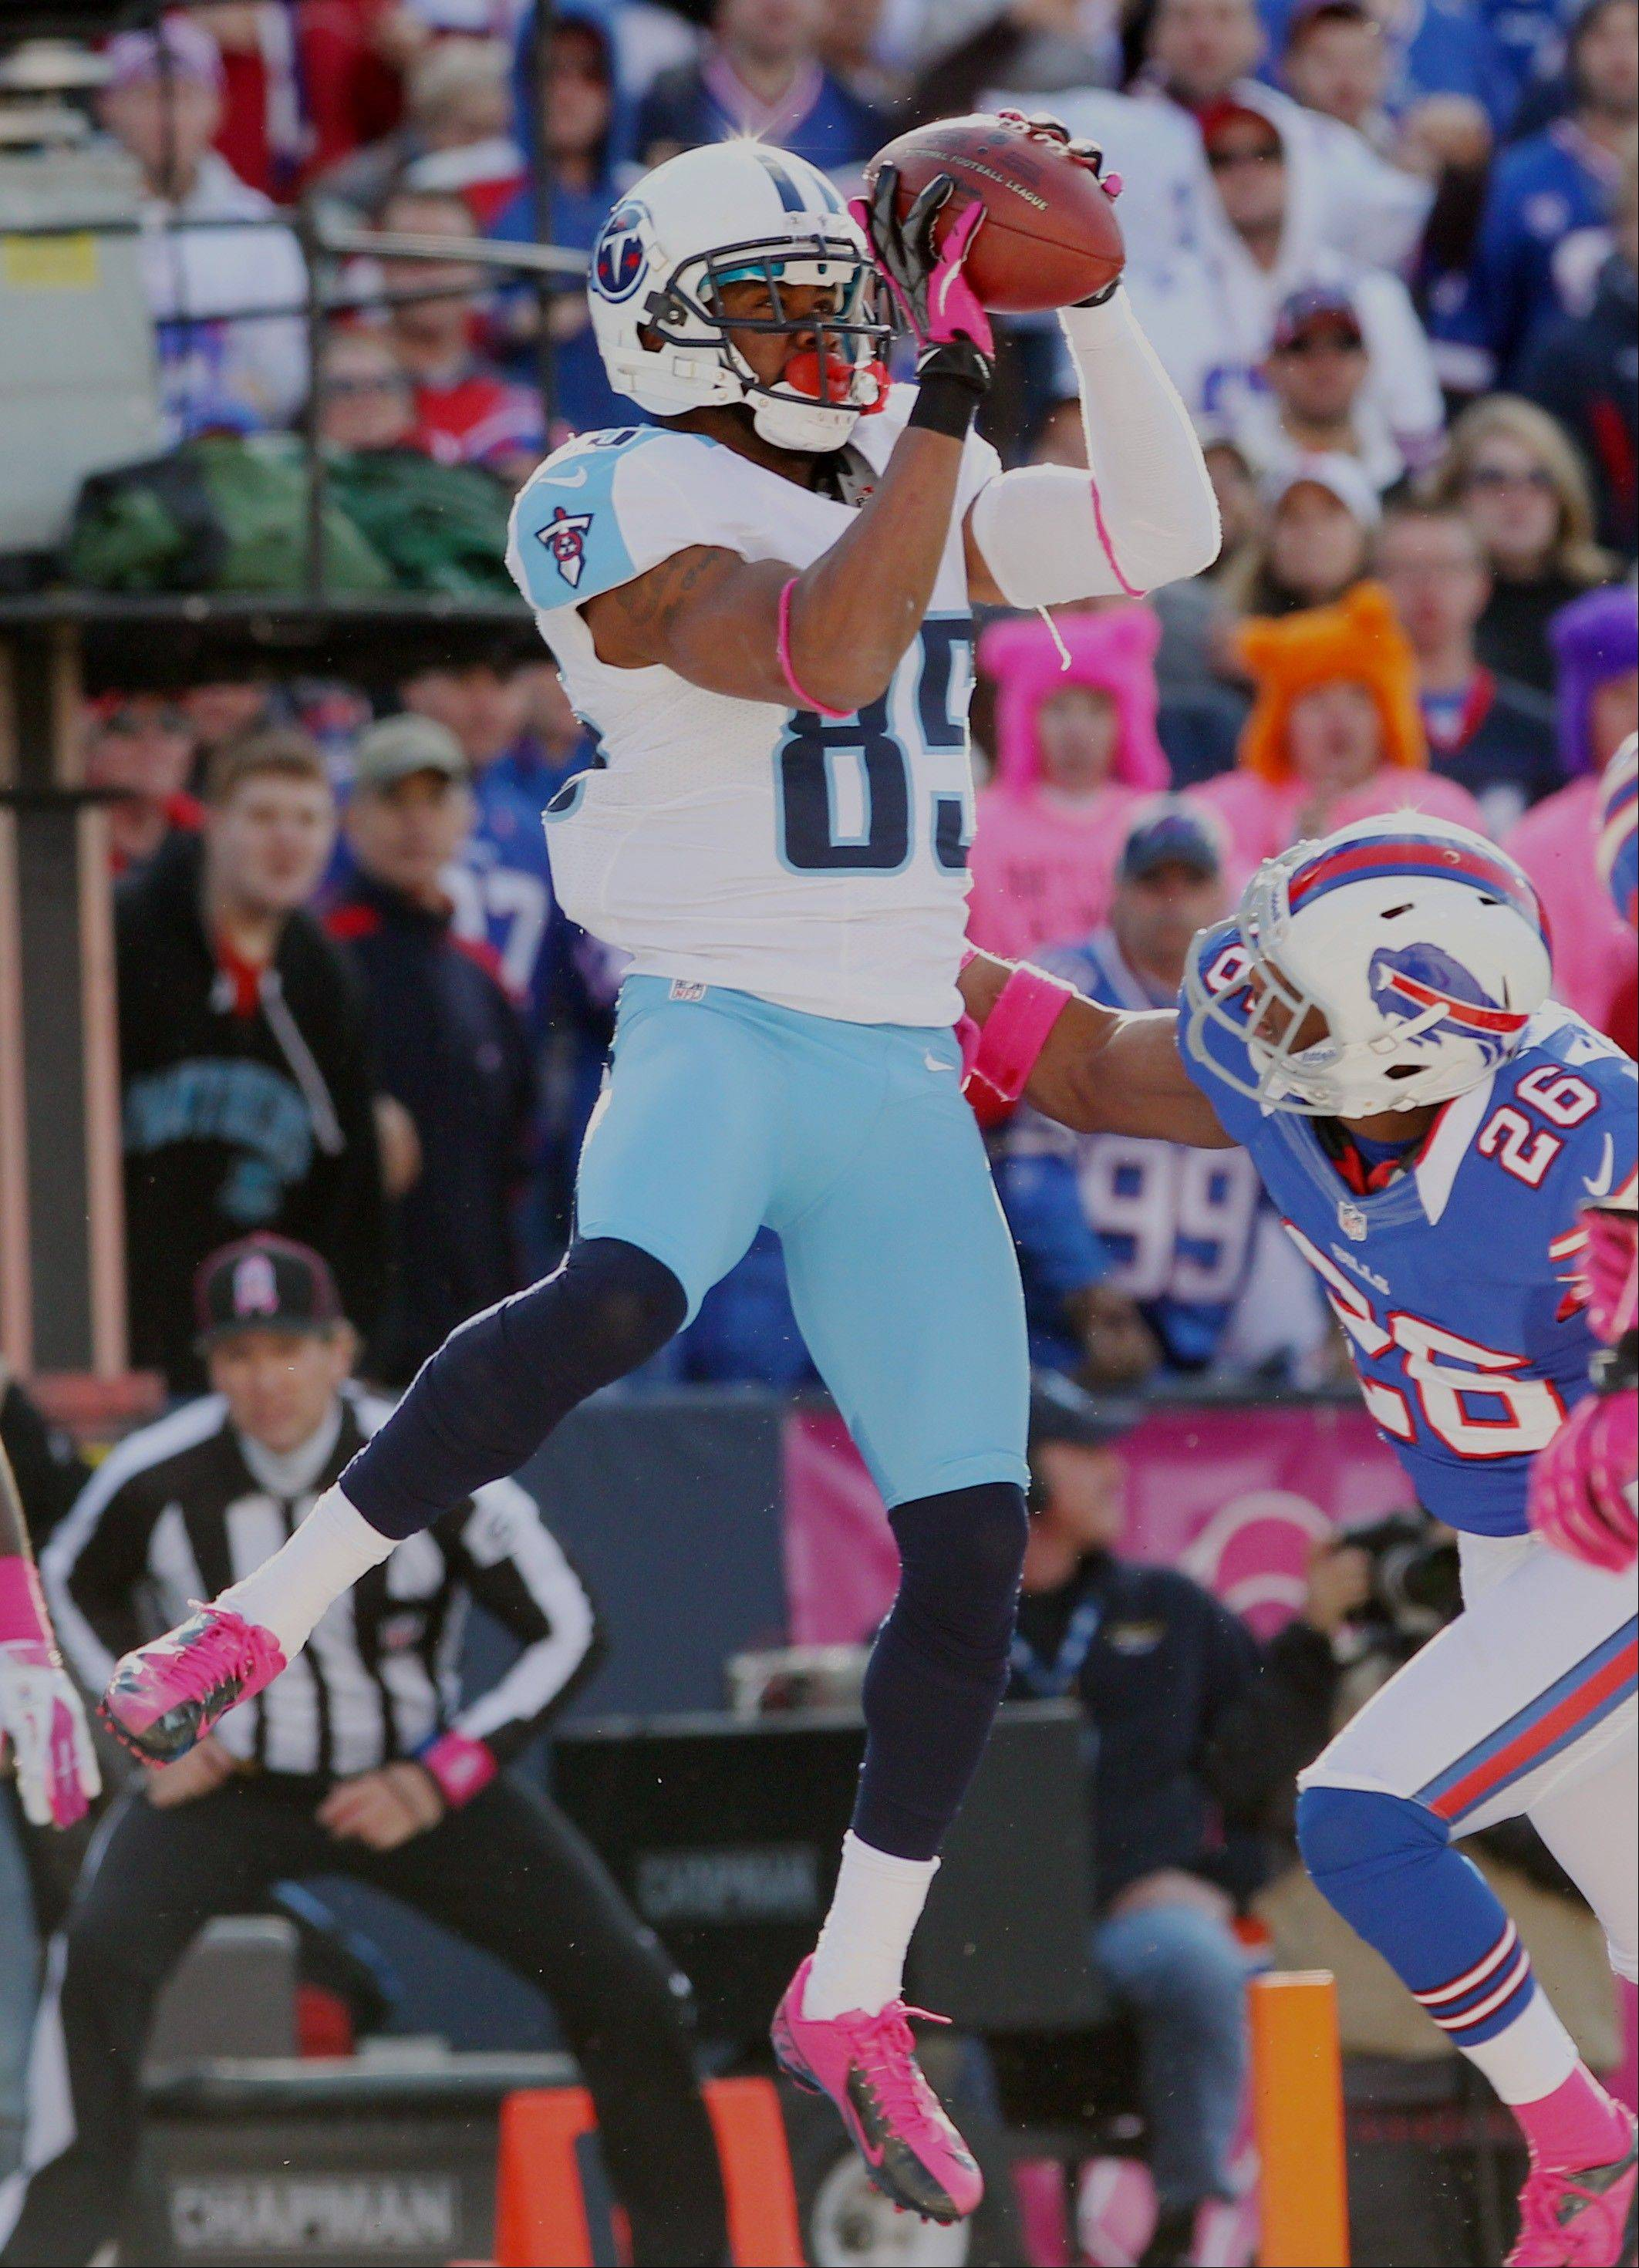 Tennessee Titans wide receiver Nate Washington catches the game-winning touchdown over Buffalo Bills defensive back Justin Rogers Sunday in Orchard Park, N.Y.